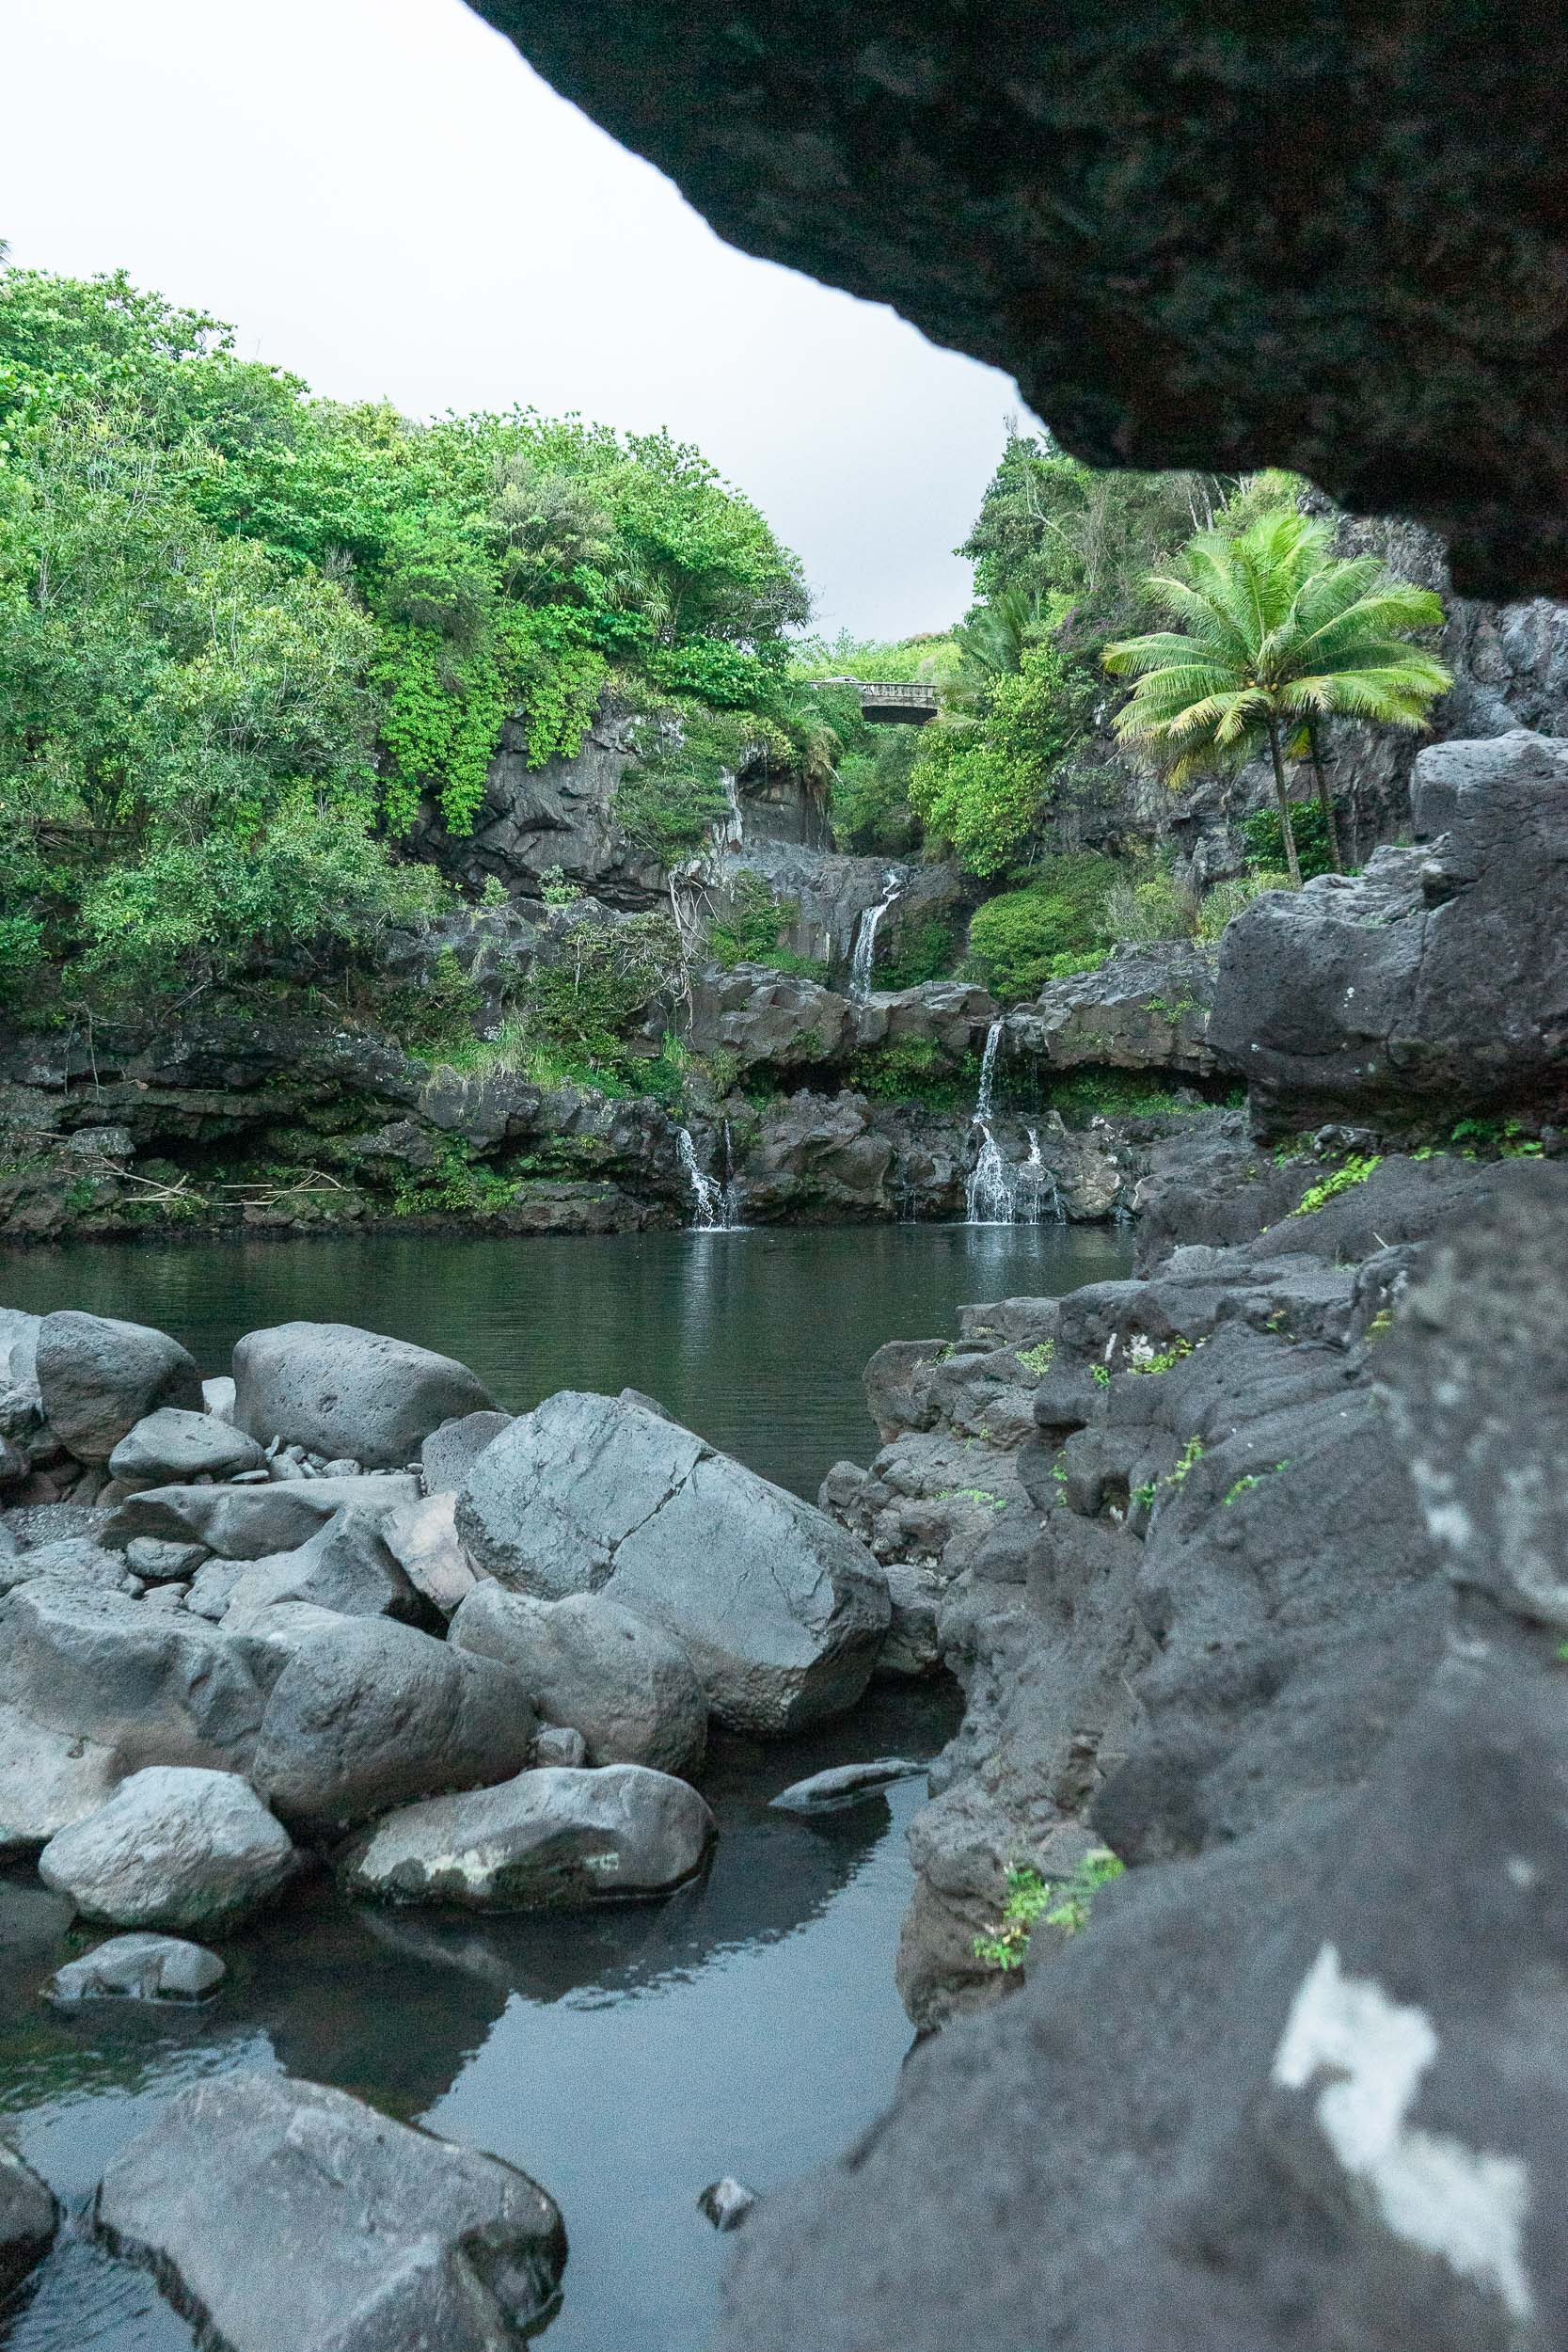 The 7 Sacred Pools on The Road to Hana. Tips, tricks, and things to do in Maui, Hawaii. The ultimate travel guide along with rare, locals only secrets